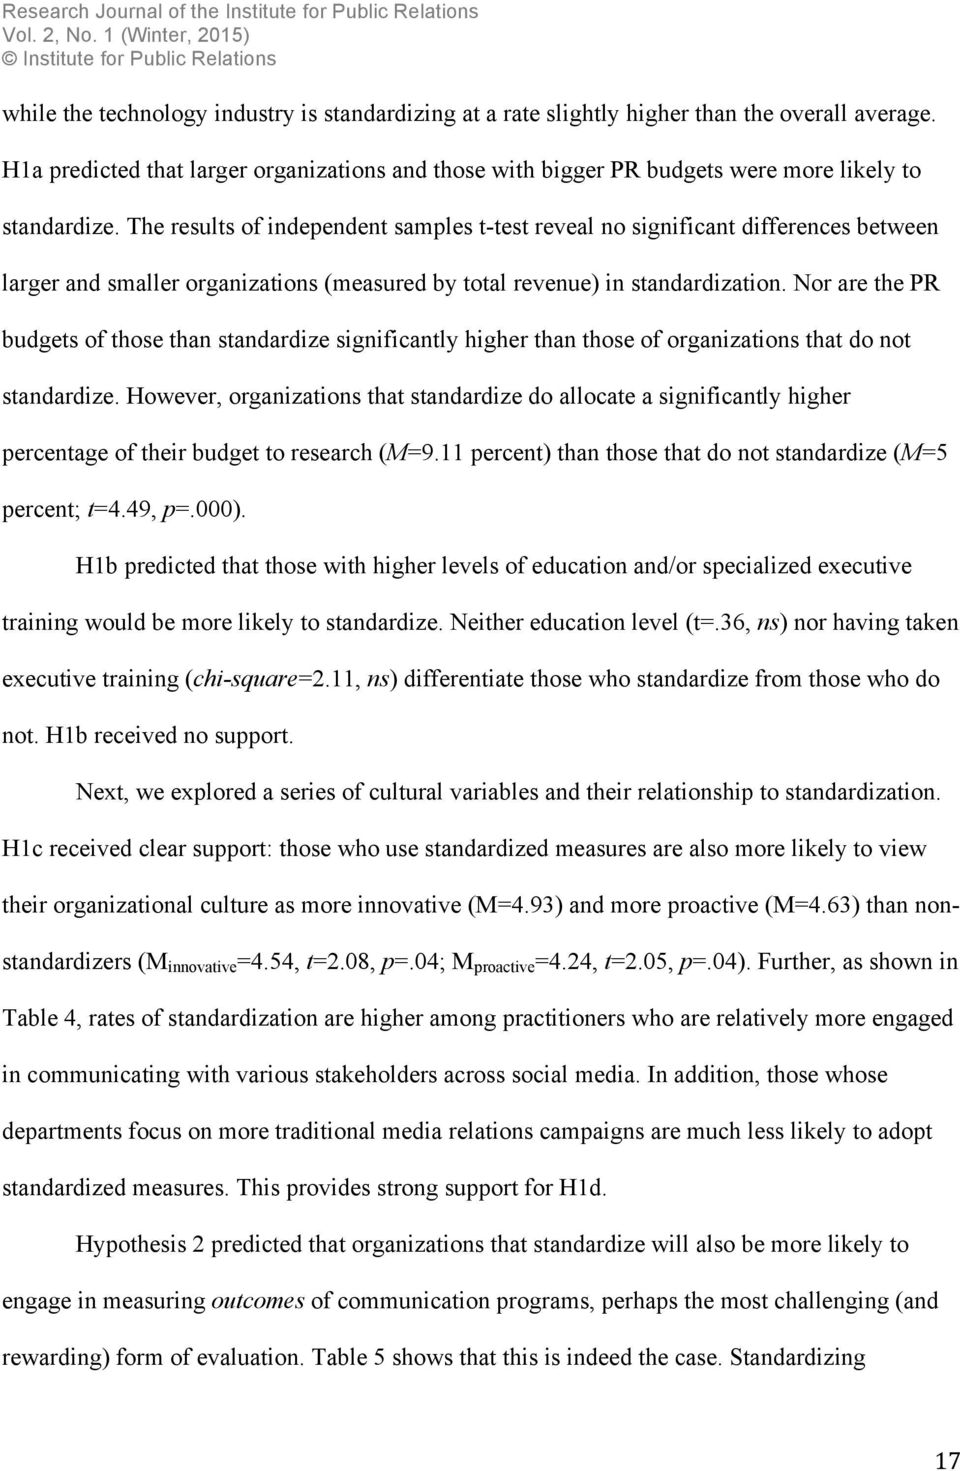 The results of independent samples t-test reveal no significant differences between larger and smaller organizations (measured by total revenue) in standardization.